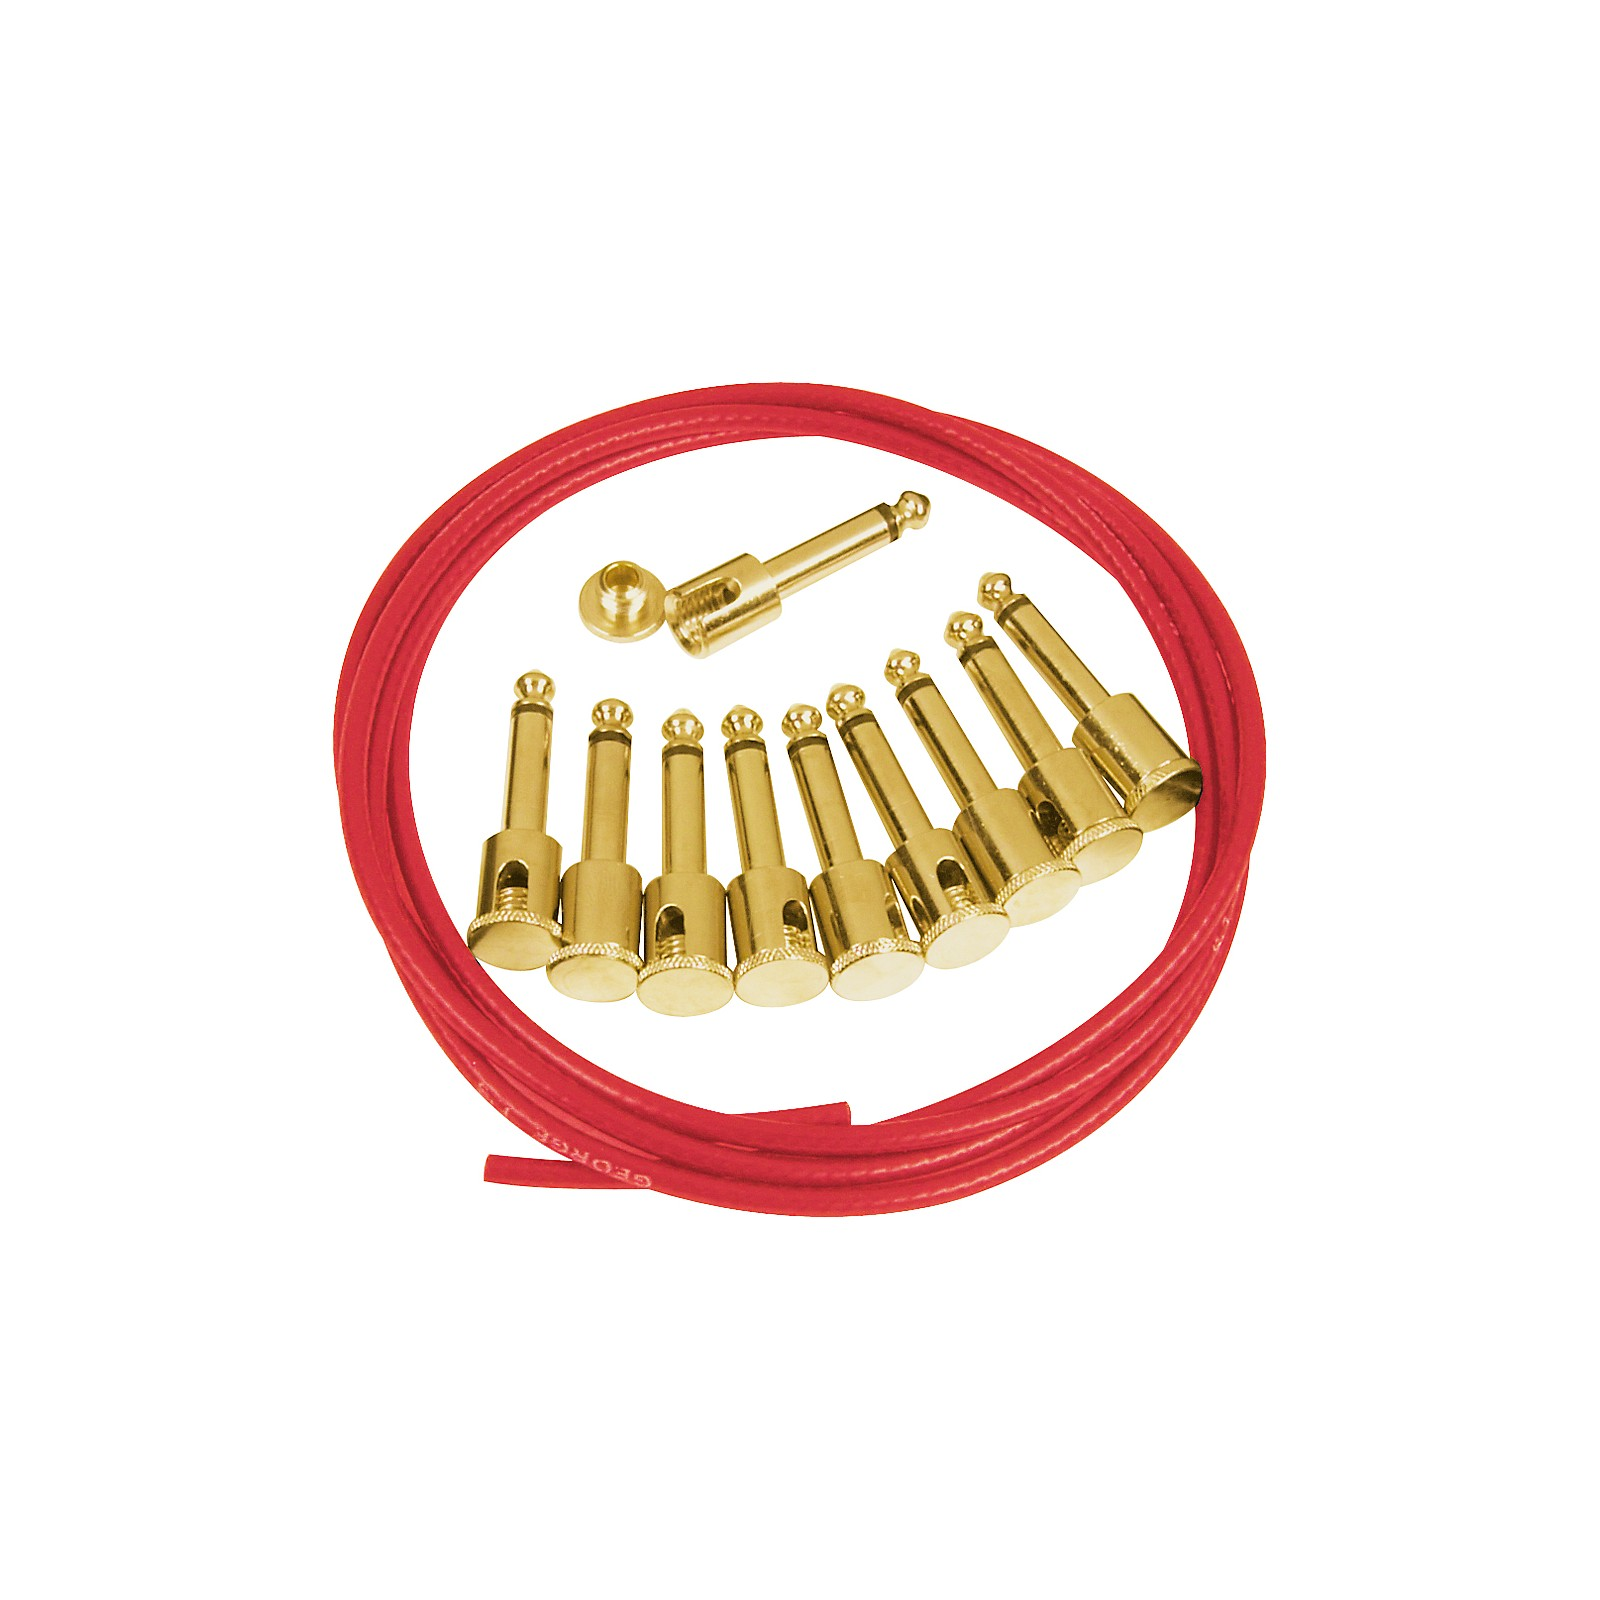 George L's Vintage Red Effects Cable Kit